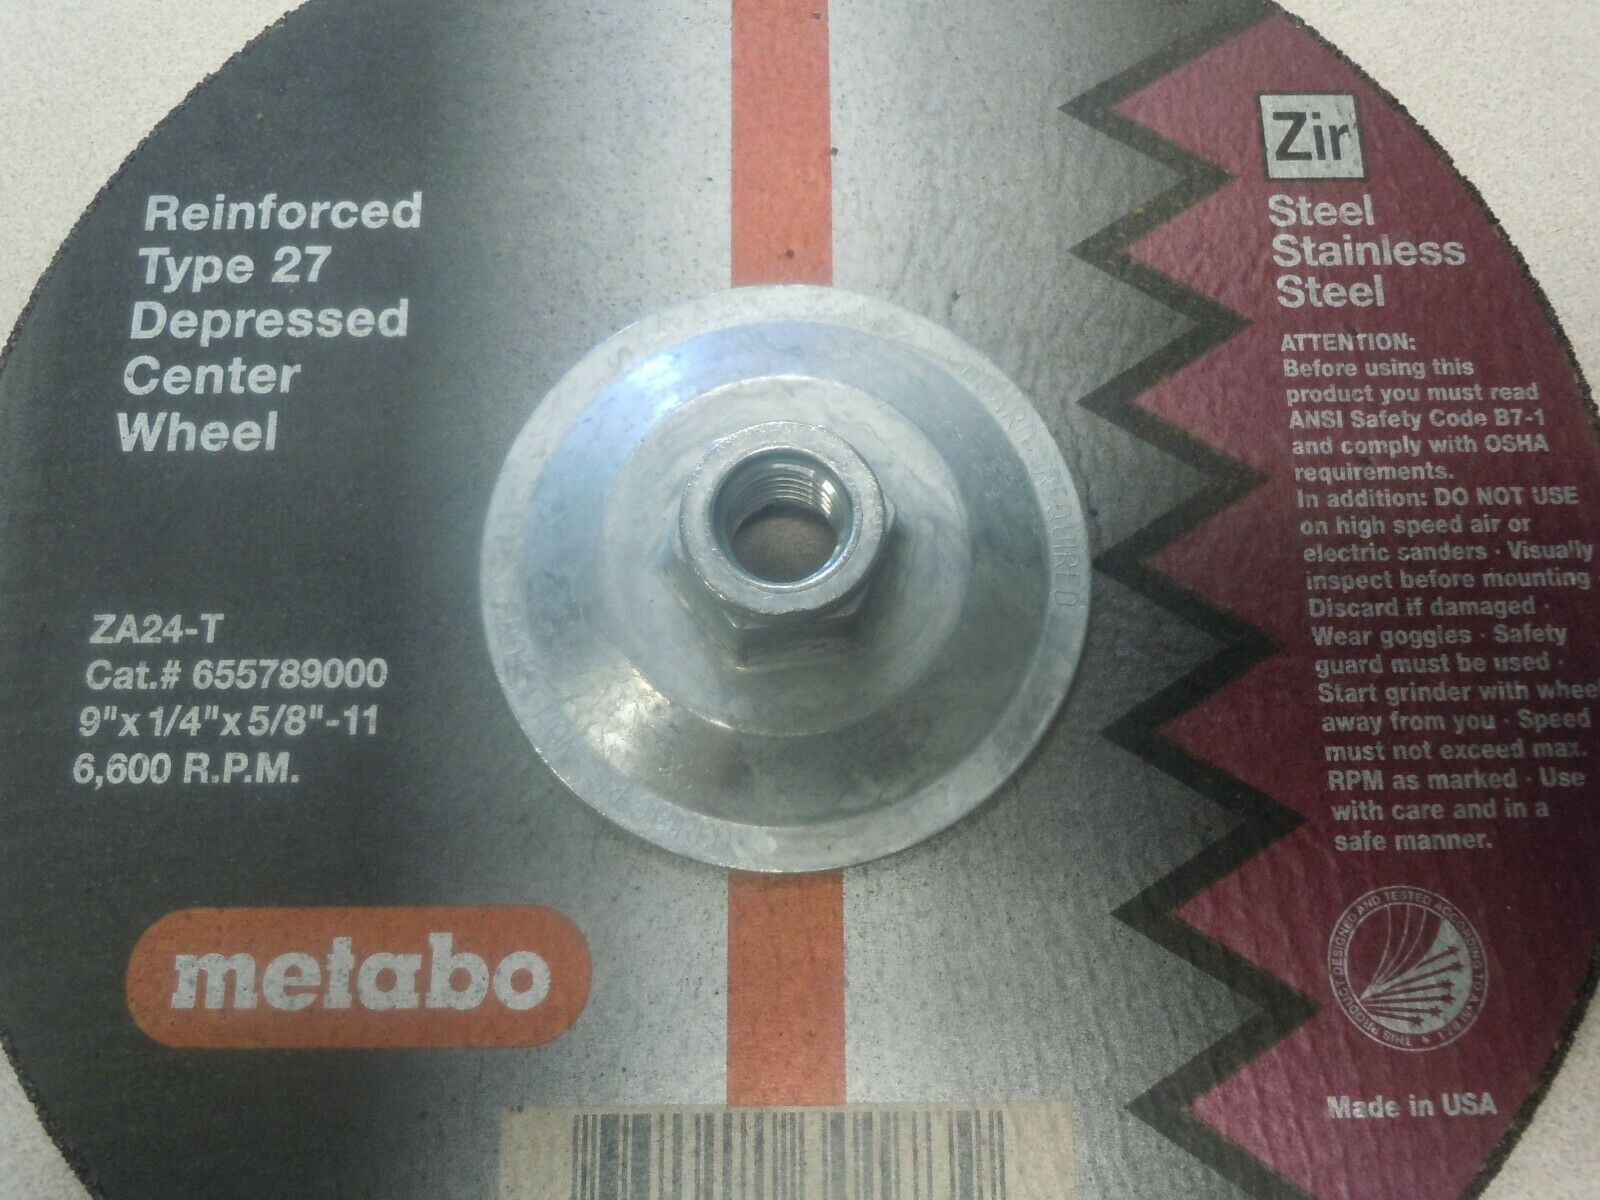 7x1//4x5//8-11 Metabo Grinding Wheel Reinforced Type 27 Depressed Center Wheel